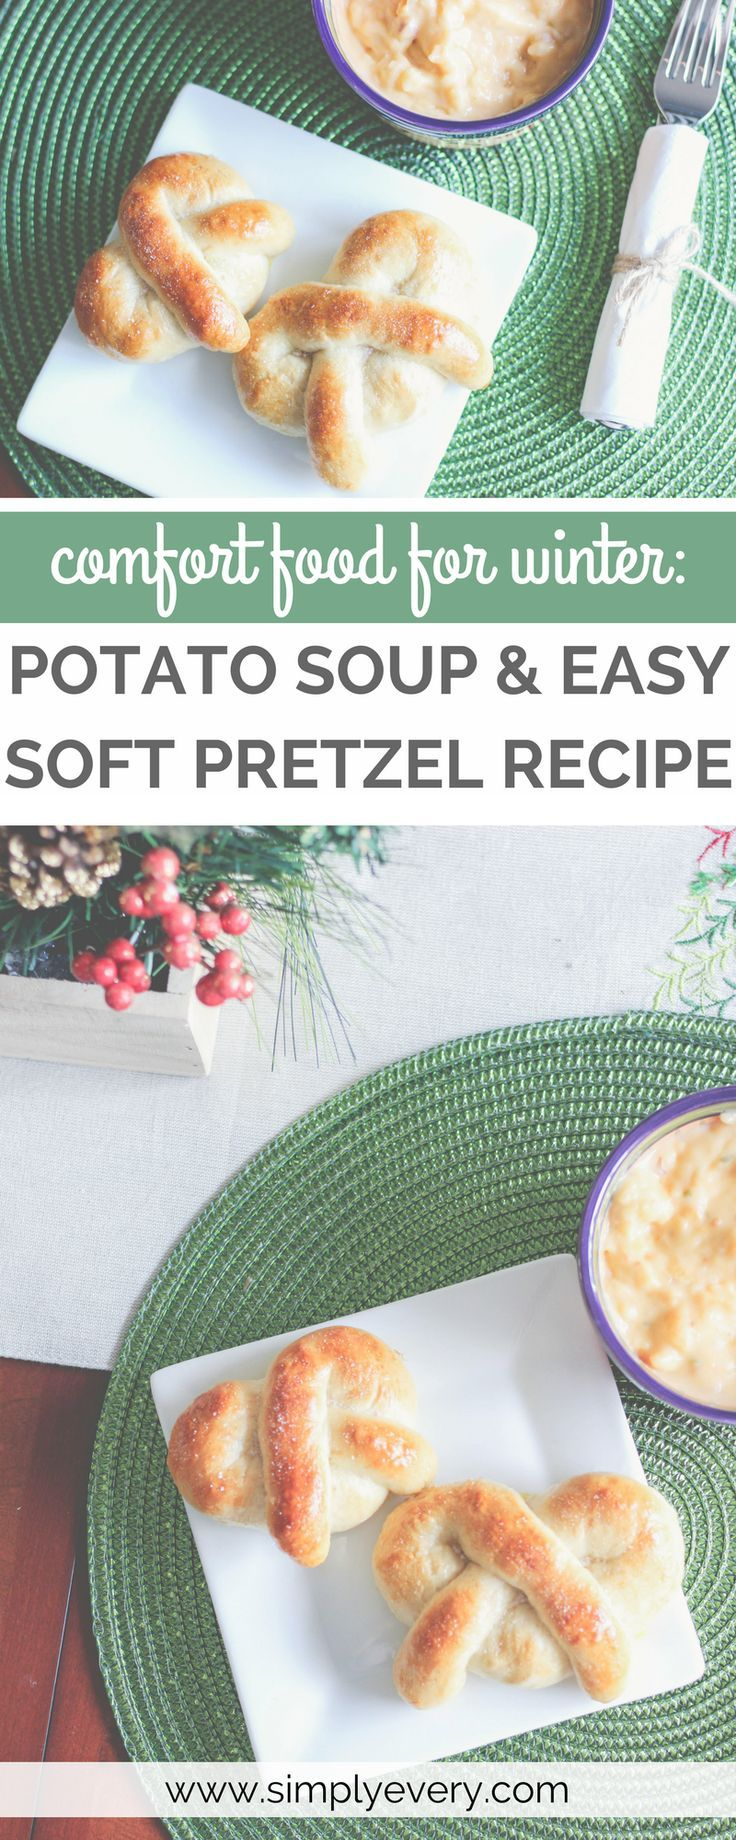 Comfort Food for Winter: Potato Soup & Easy Soft Pretzel Recipe, quick and easy soft pretzel recipe, easy recipes, easy pretzel recipe, easy bread recipe, easy recipes for mombs, pretzel bread, soft pretzels,